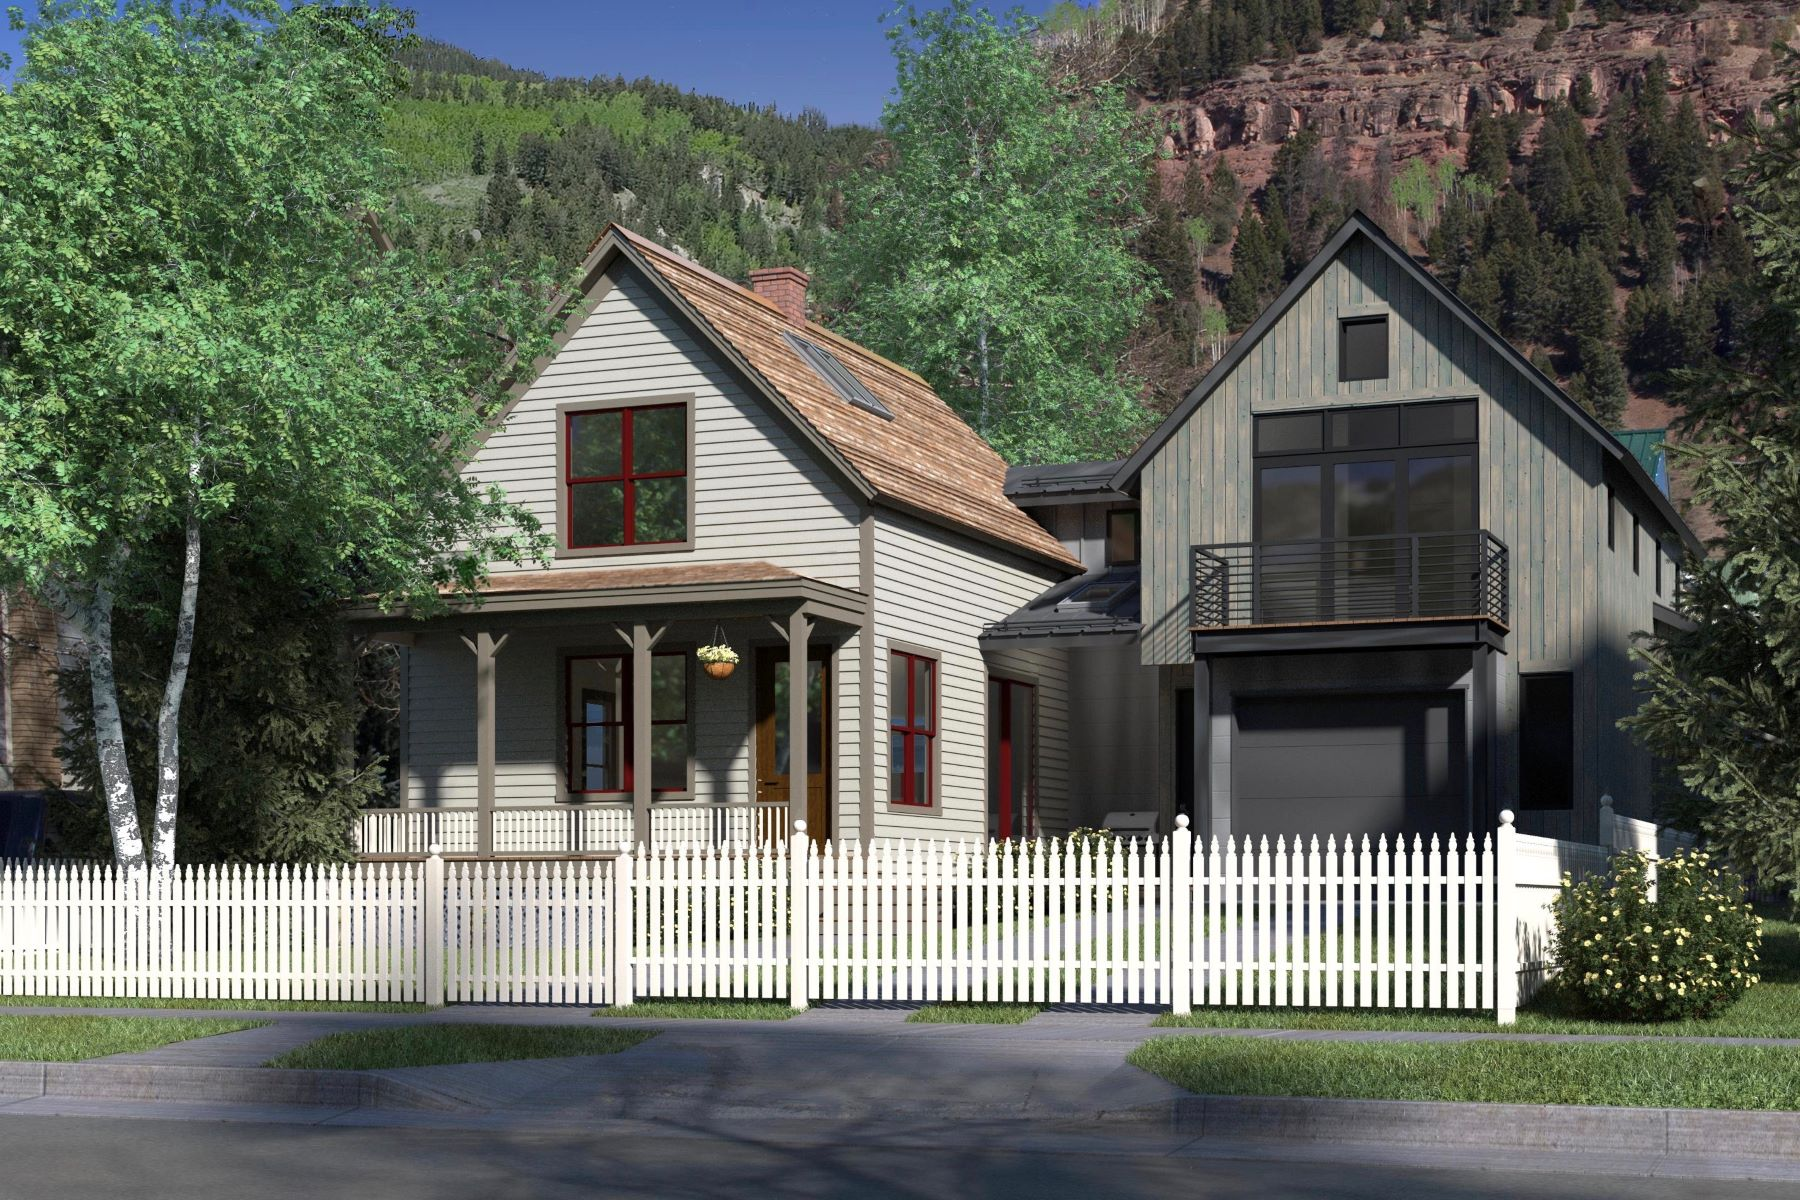 Casa Unifamiliar por un Venta en 547 West Pacific Avenue 547 West Pacific Avenue Telluride, Colorado 81435 Estados Unidos